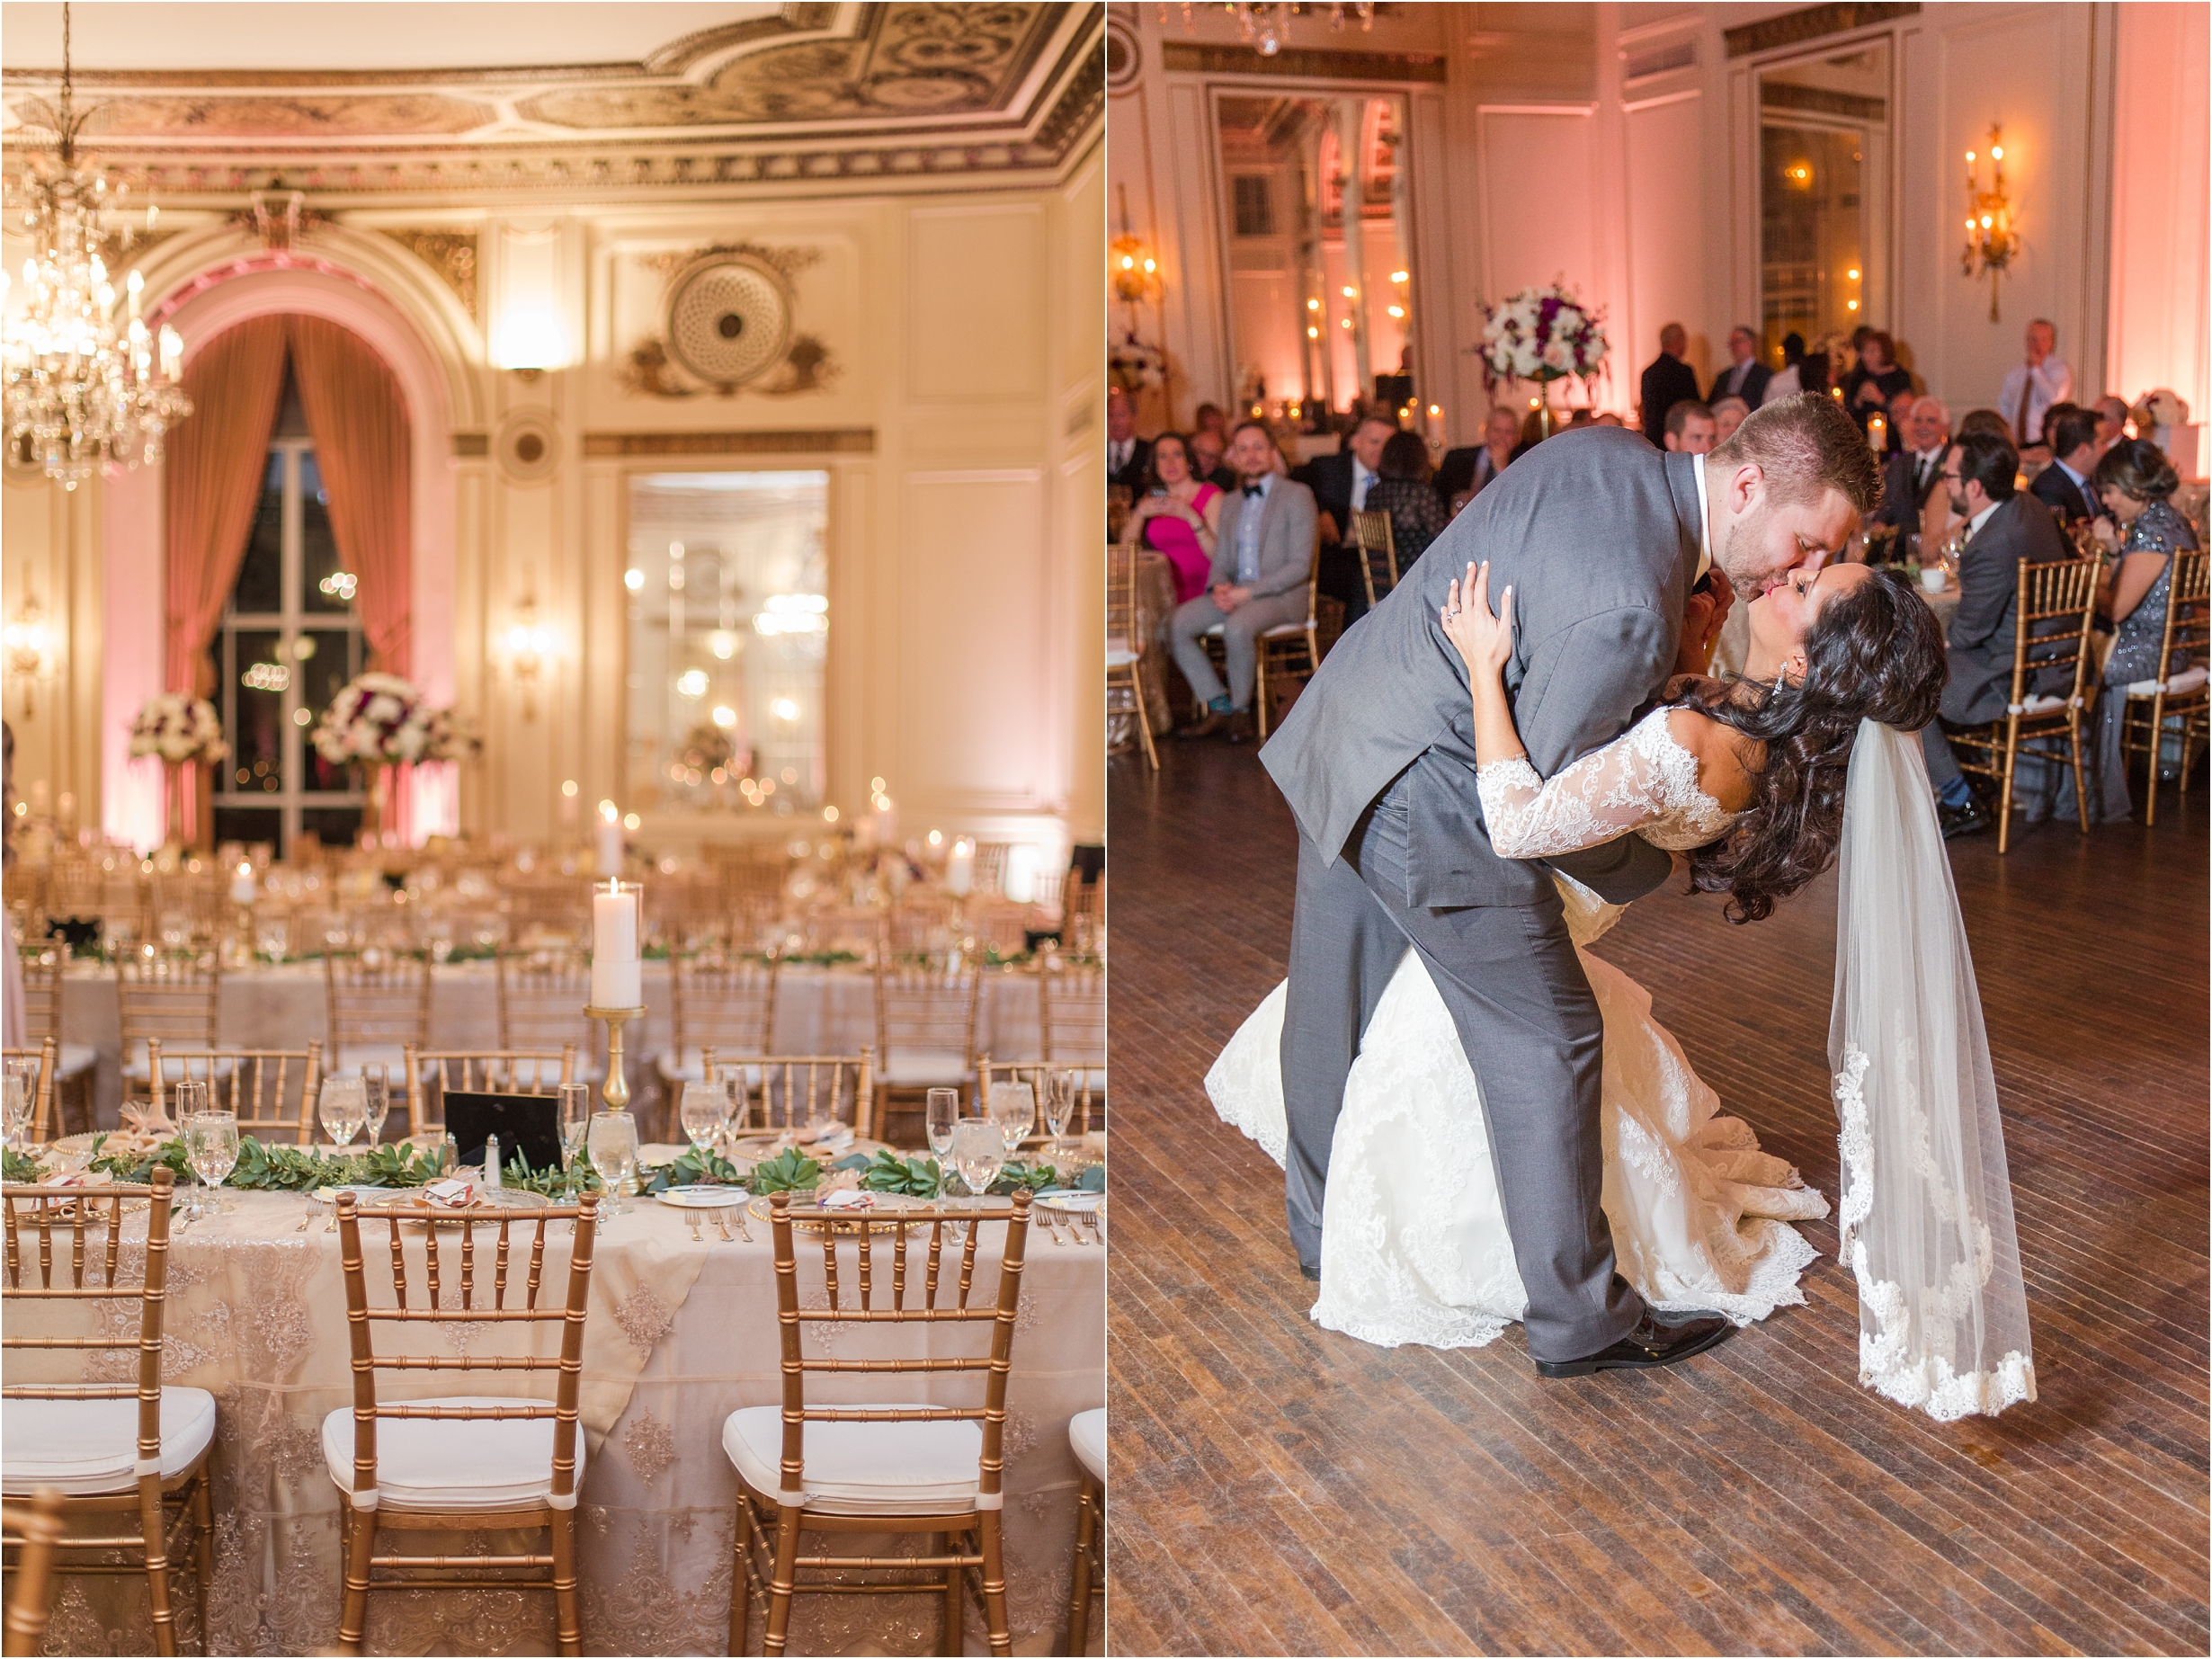 romantic-timeless-candid-wedding-photos-at-the-colony-club-in-detroit-mi-by-courtney-carolyn-photography_0003.jpg